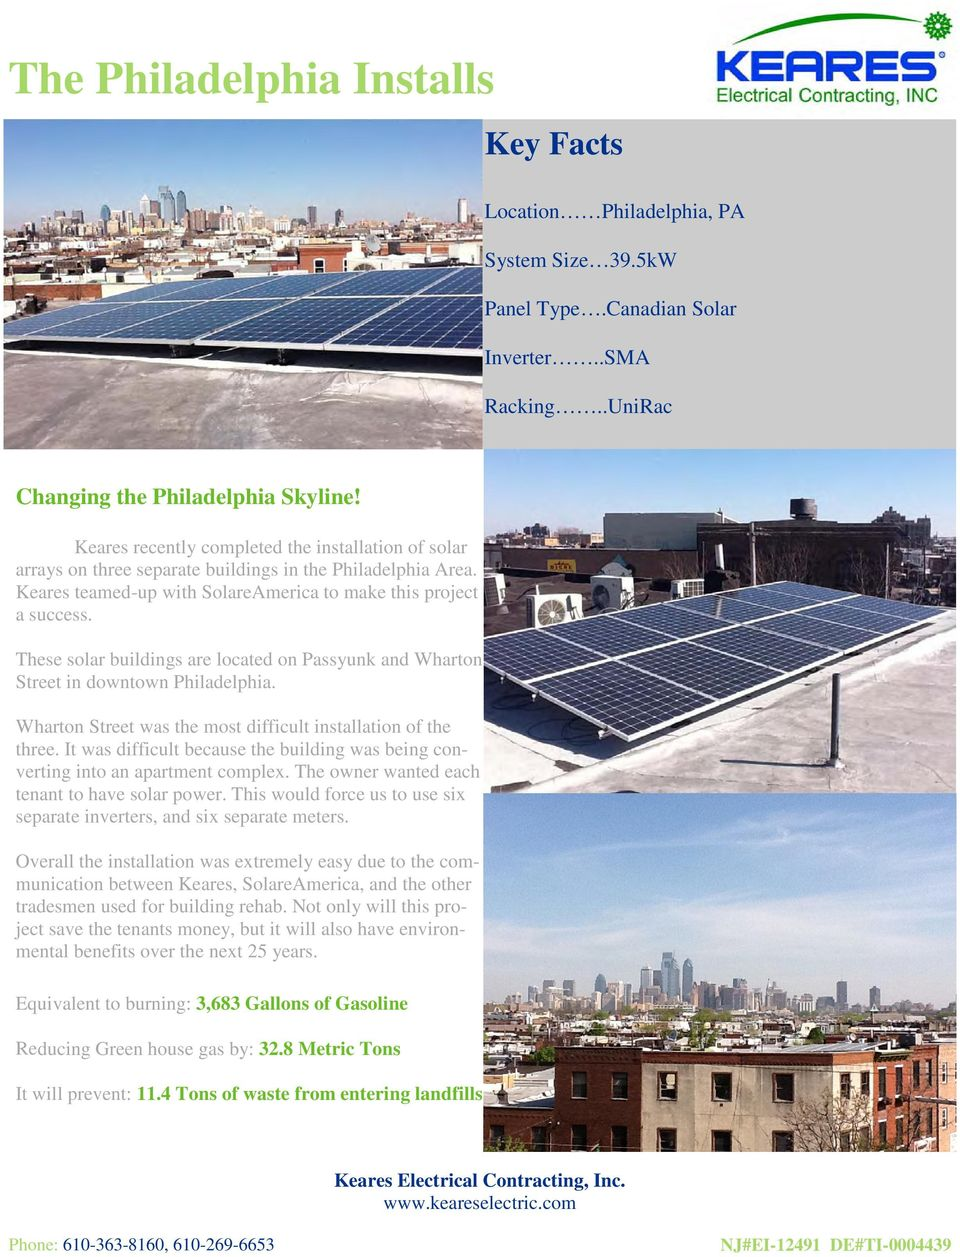 These solar buildings are located on Passyunk and Wharton Street in downtown Philadelphia. Wharton Street was the most difficult installation of the three.